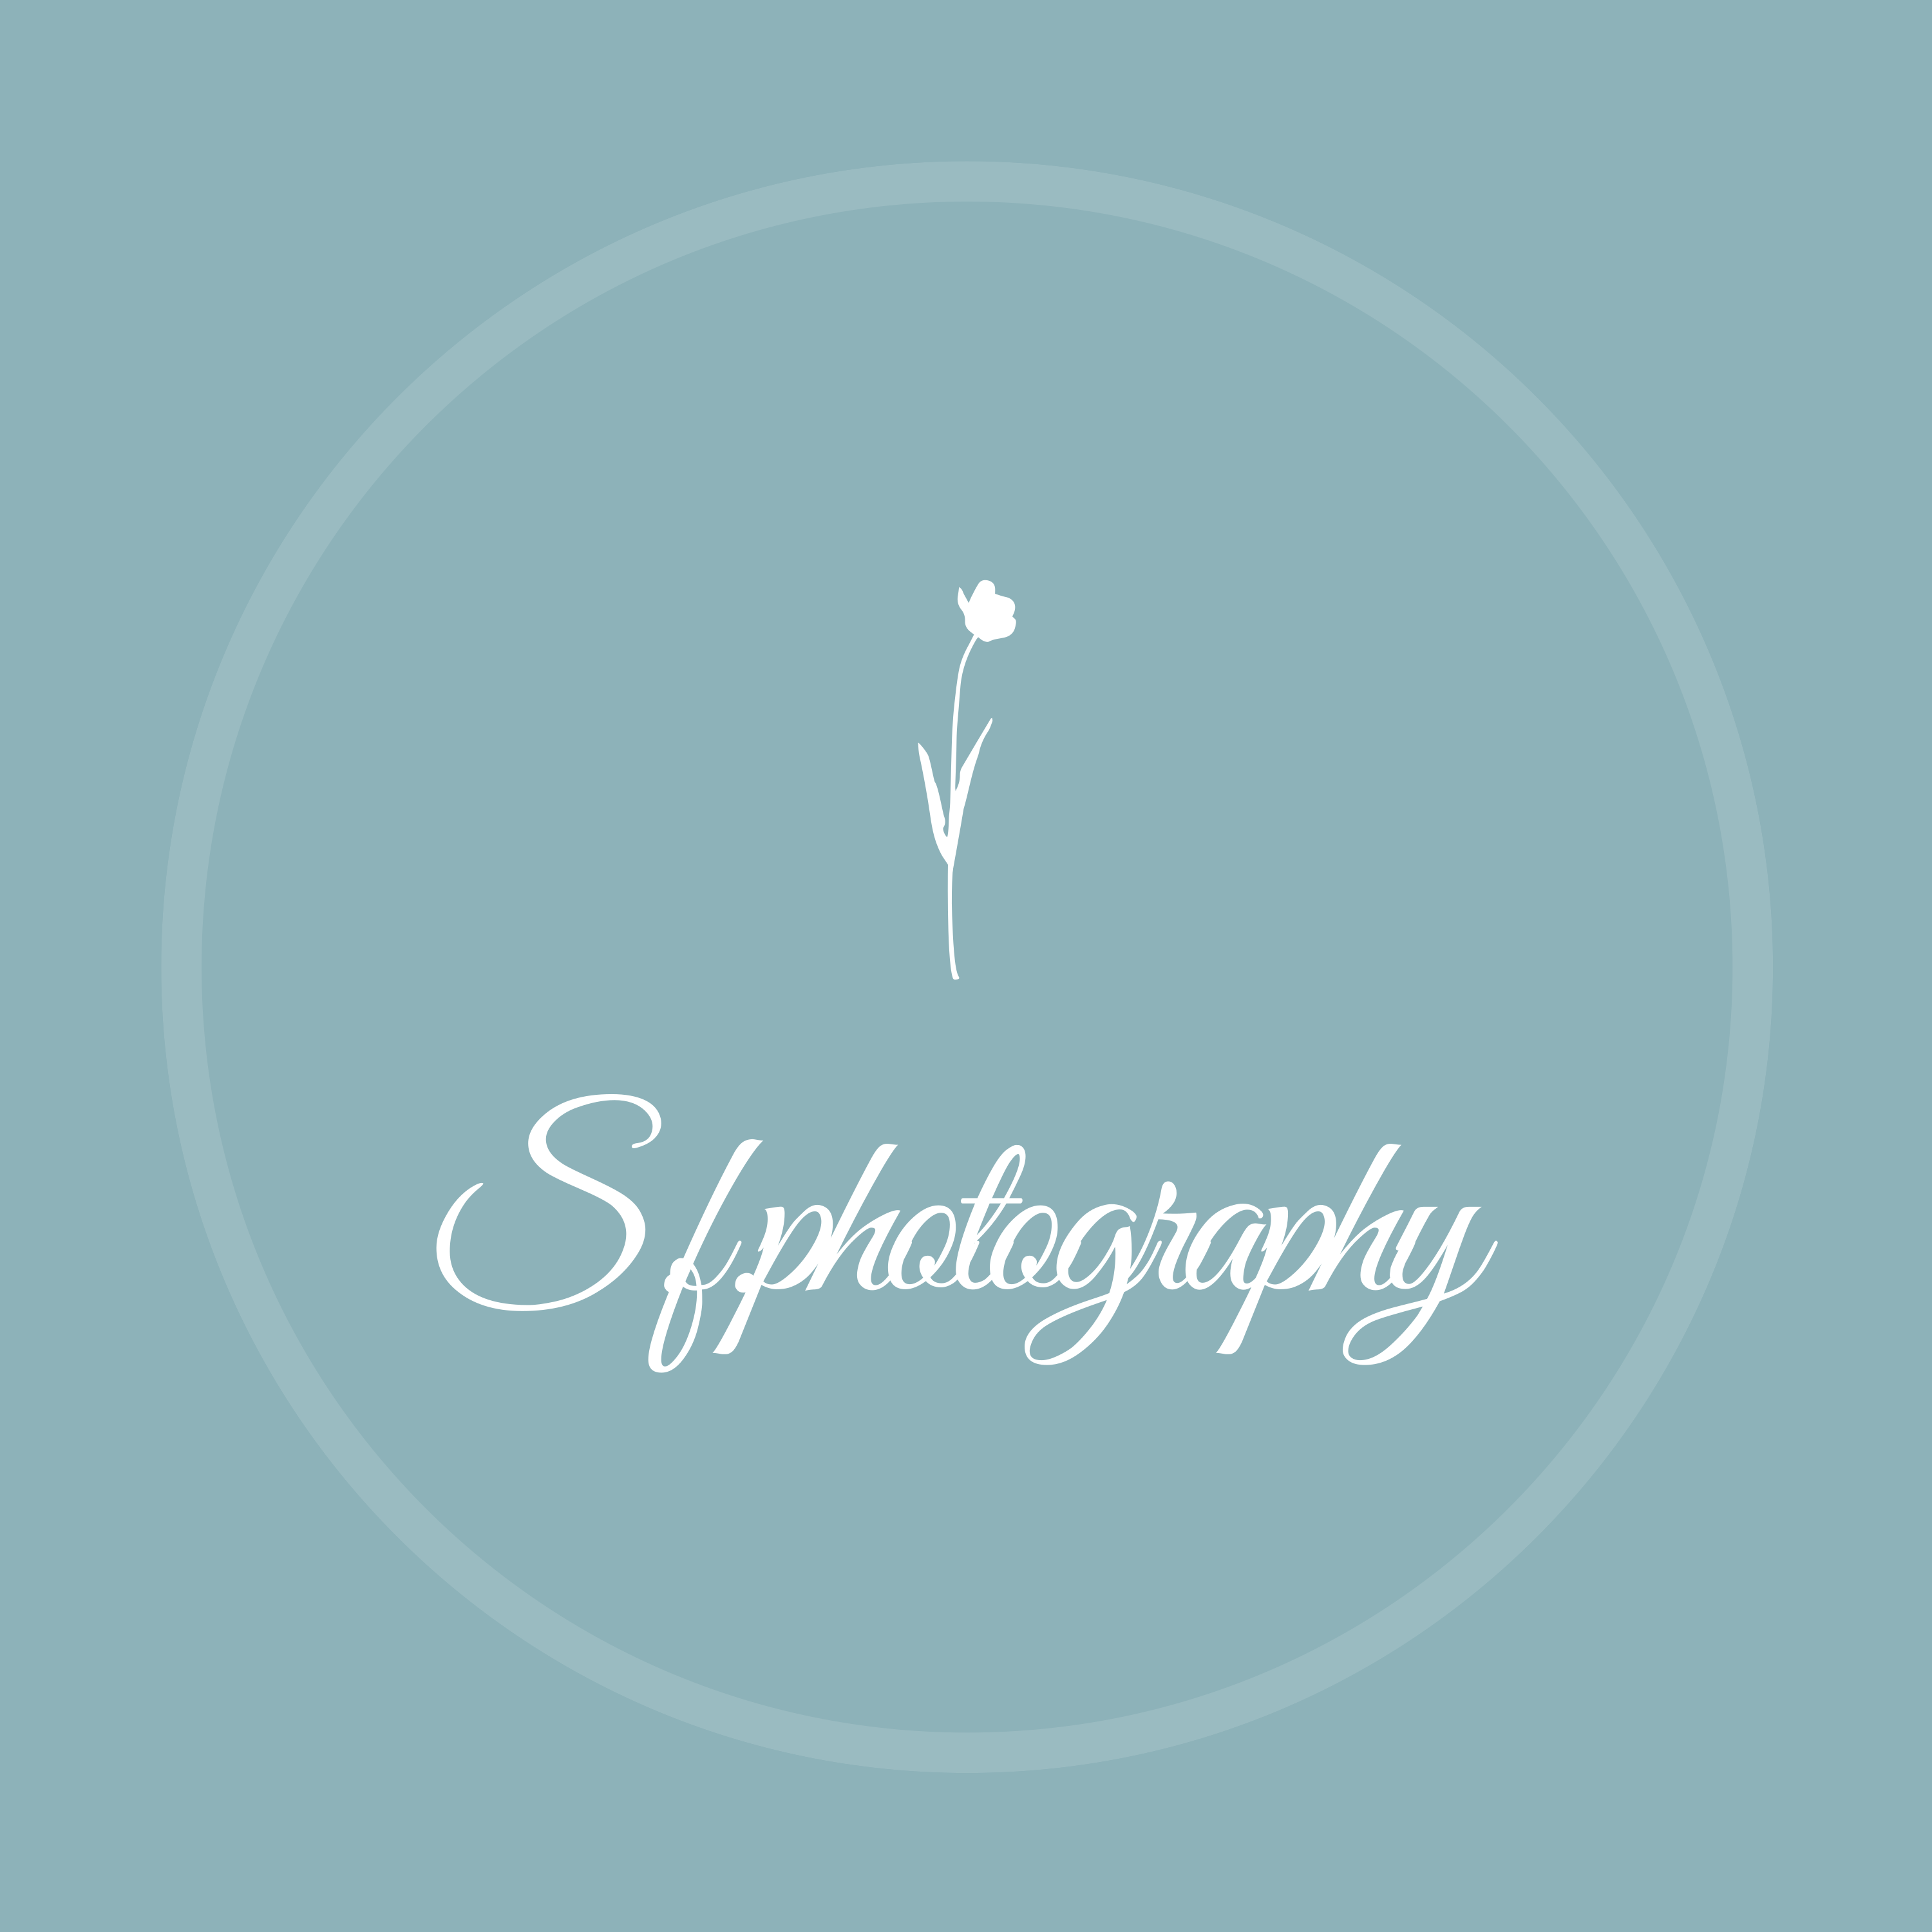 S.f.photography